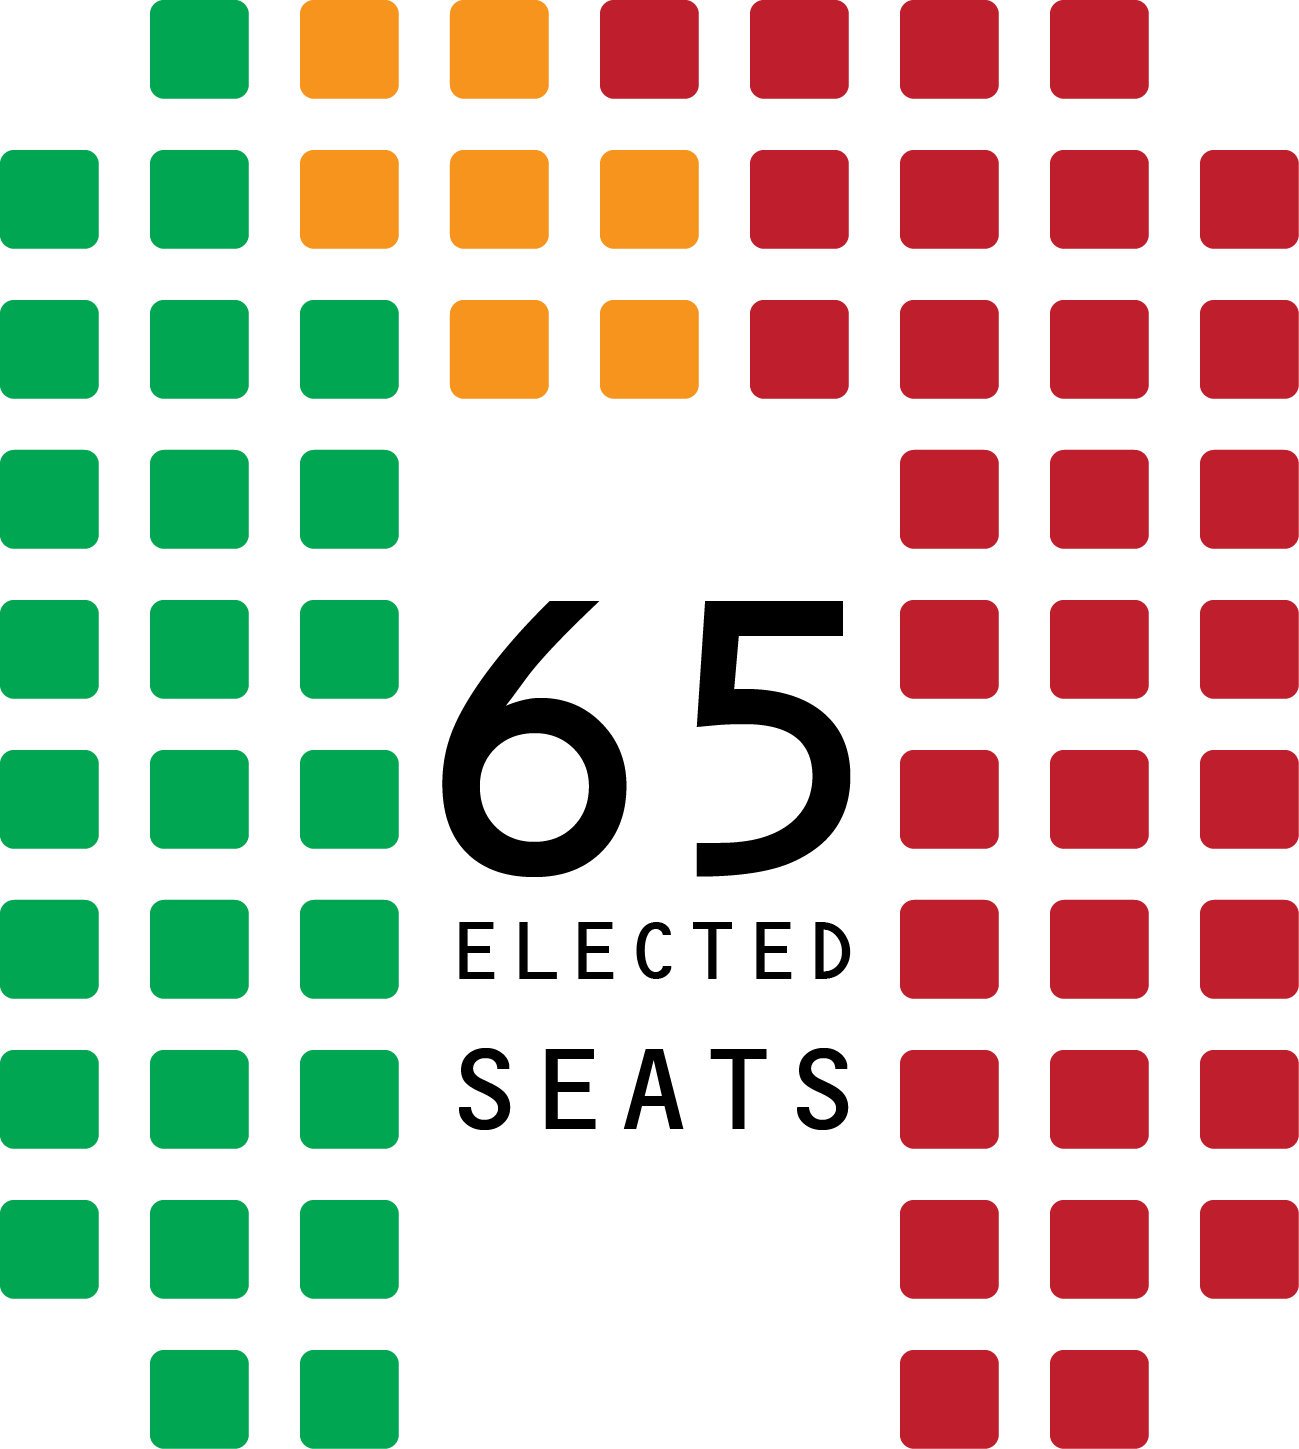 File:National Assembly seat distribution PNG - Wikimedia Commons